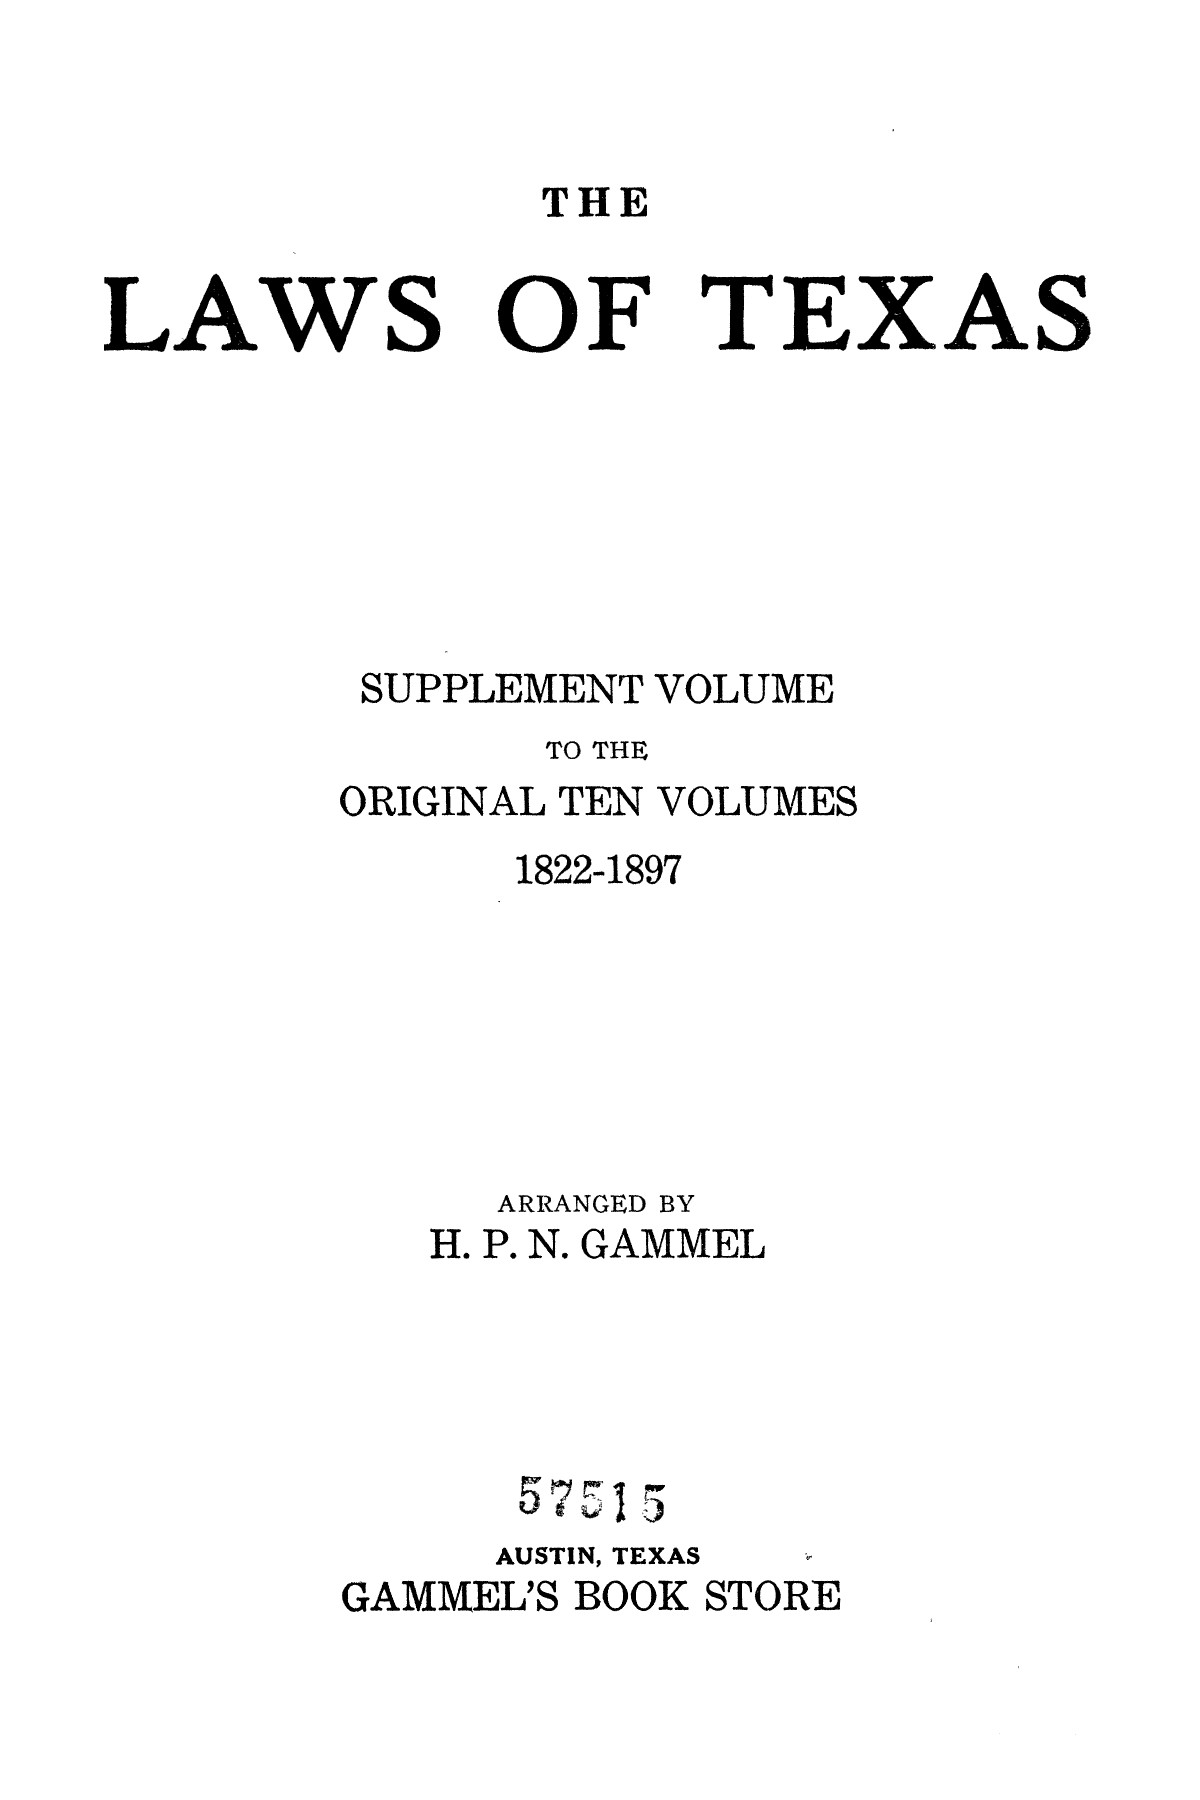 The Laws of Texas, 1934-1935 [Volume 29]                                                                                                      [Sequence #]: 1 of 2086